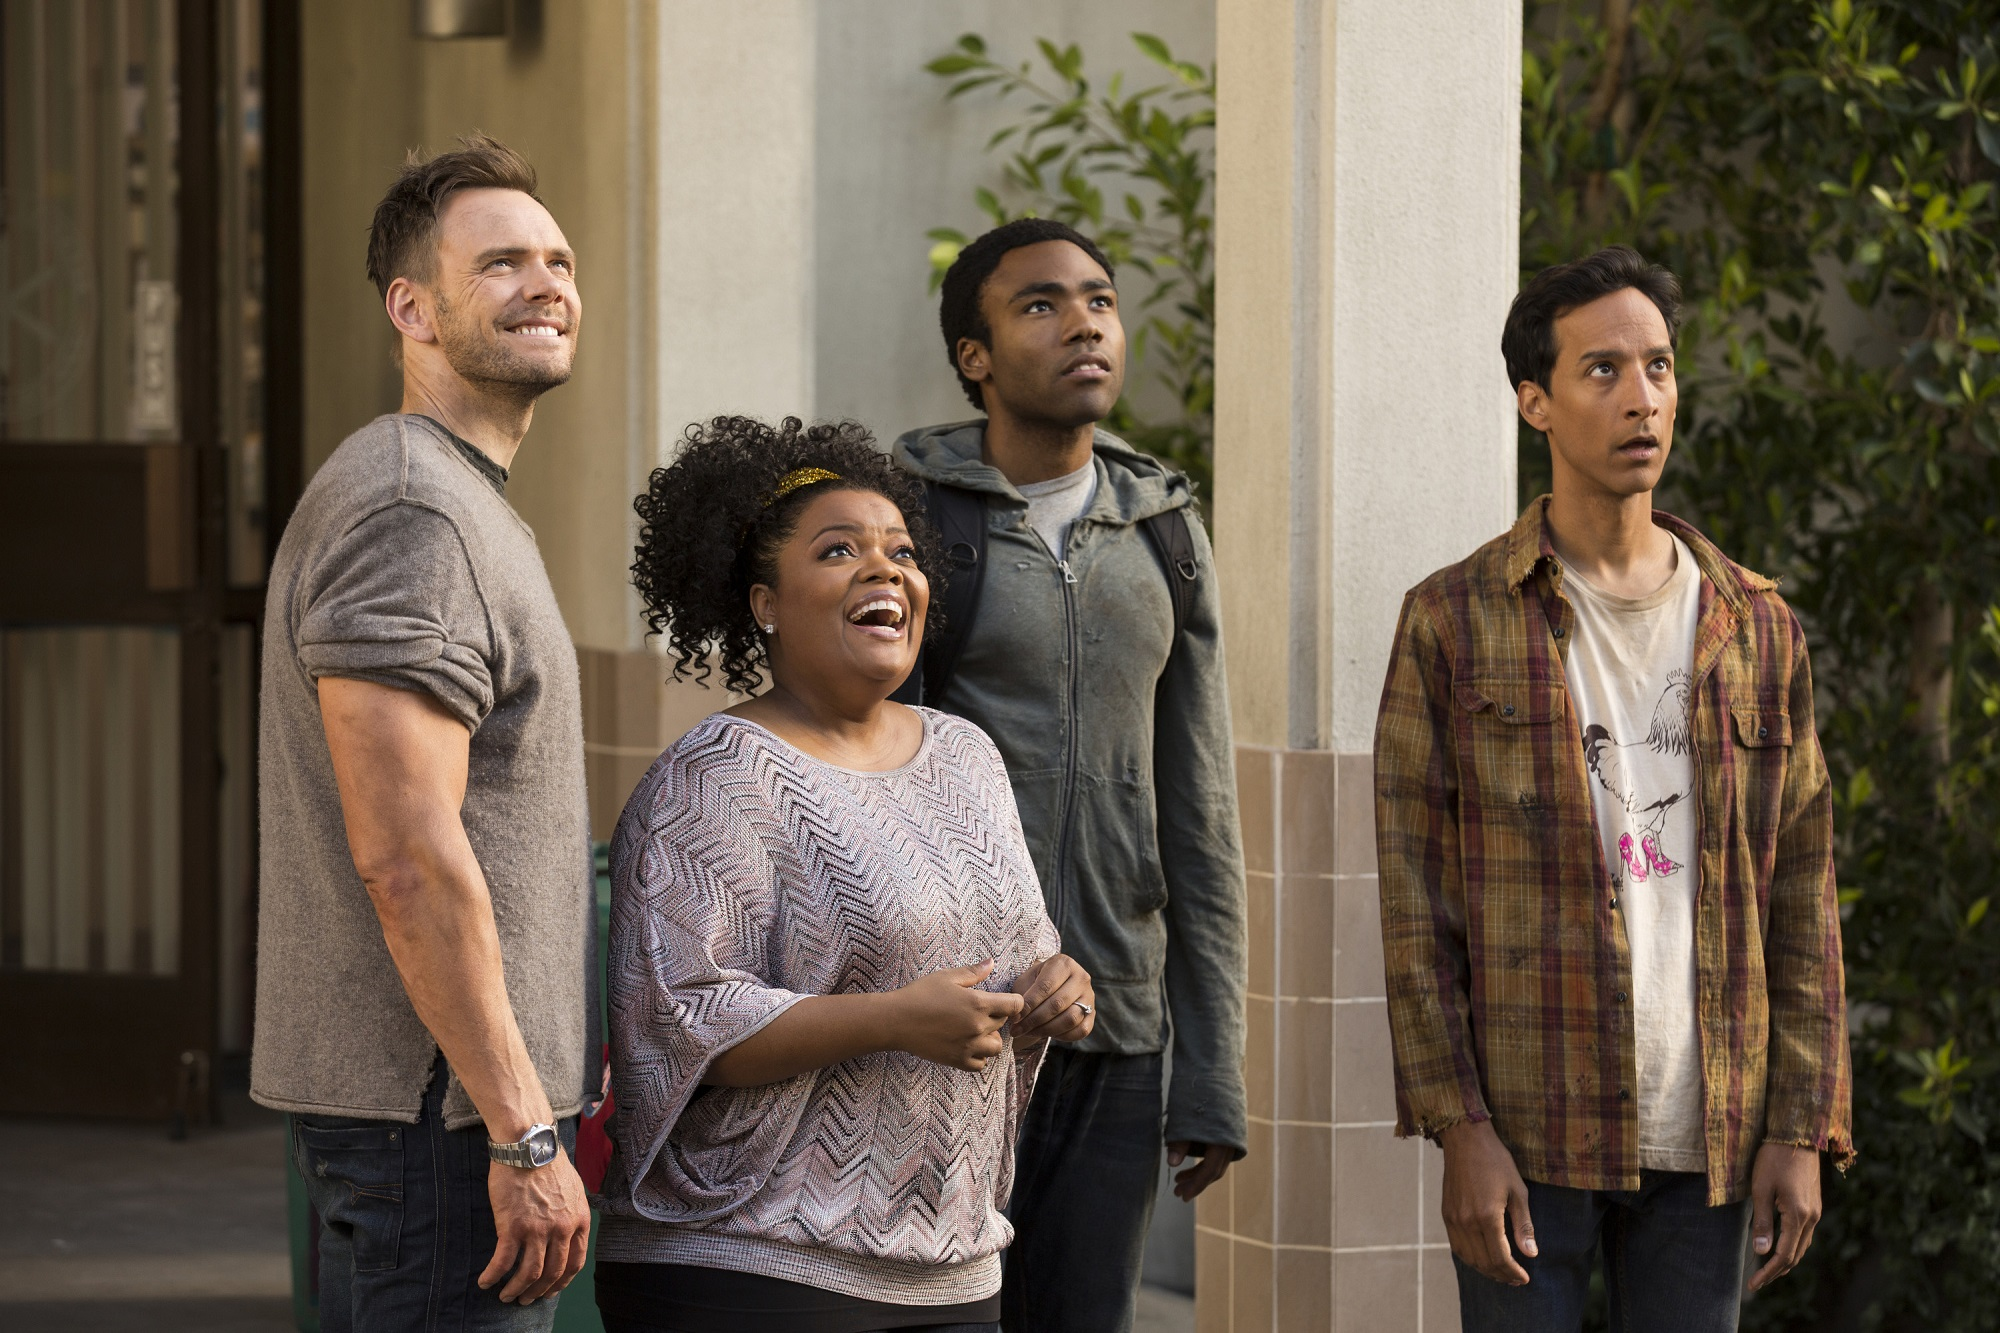 Joel McHale, Yvette Nicole Brown, Donald Glover, and Danny Pudi of Community